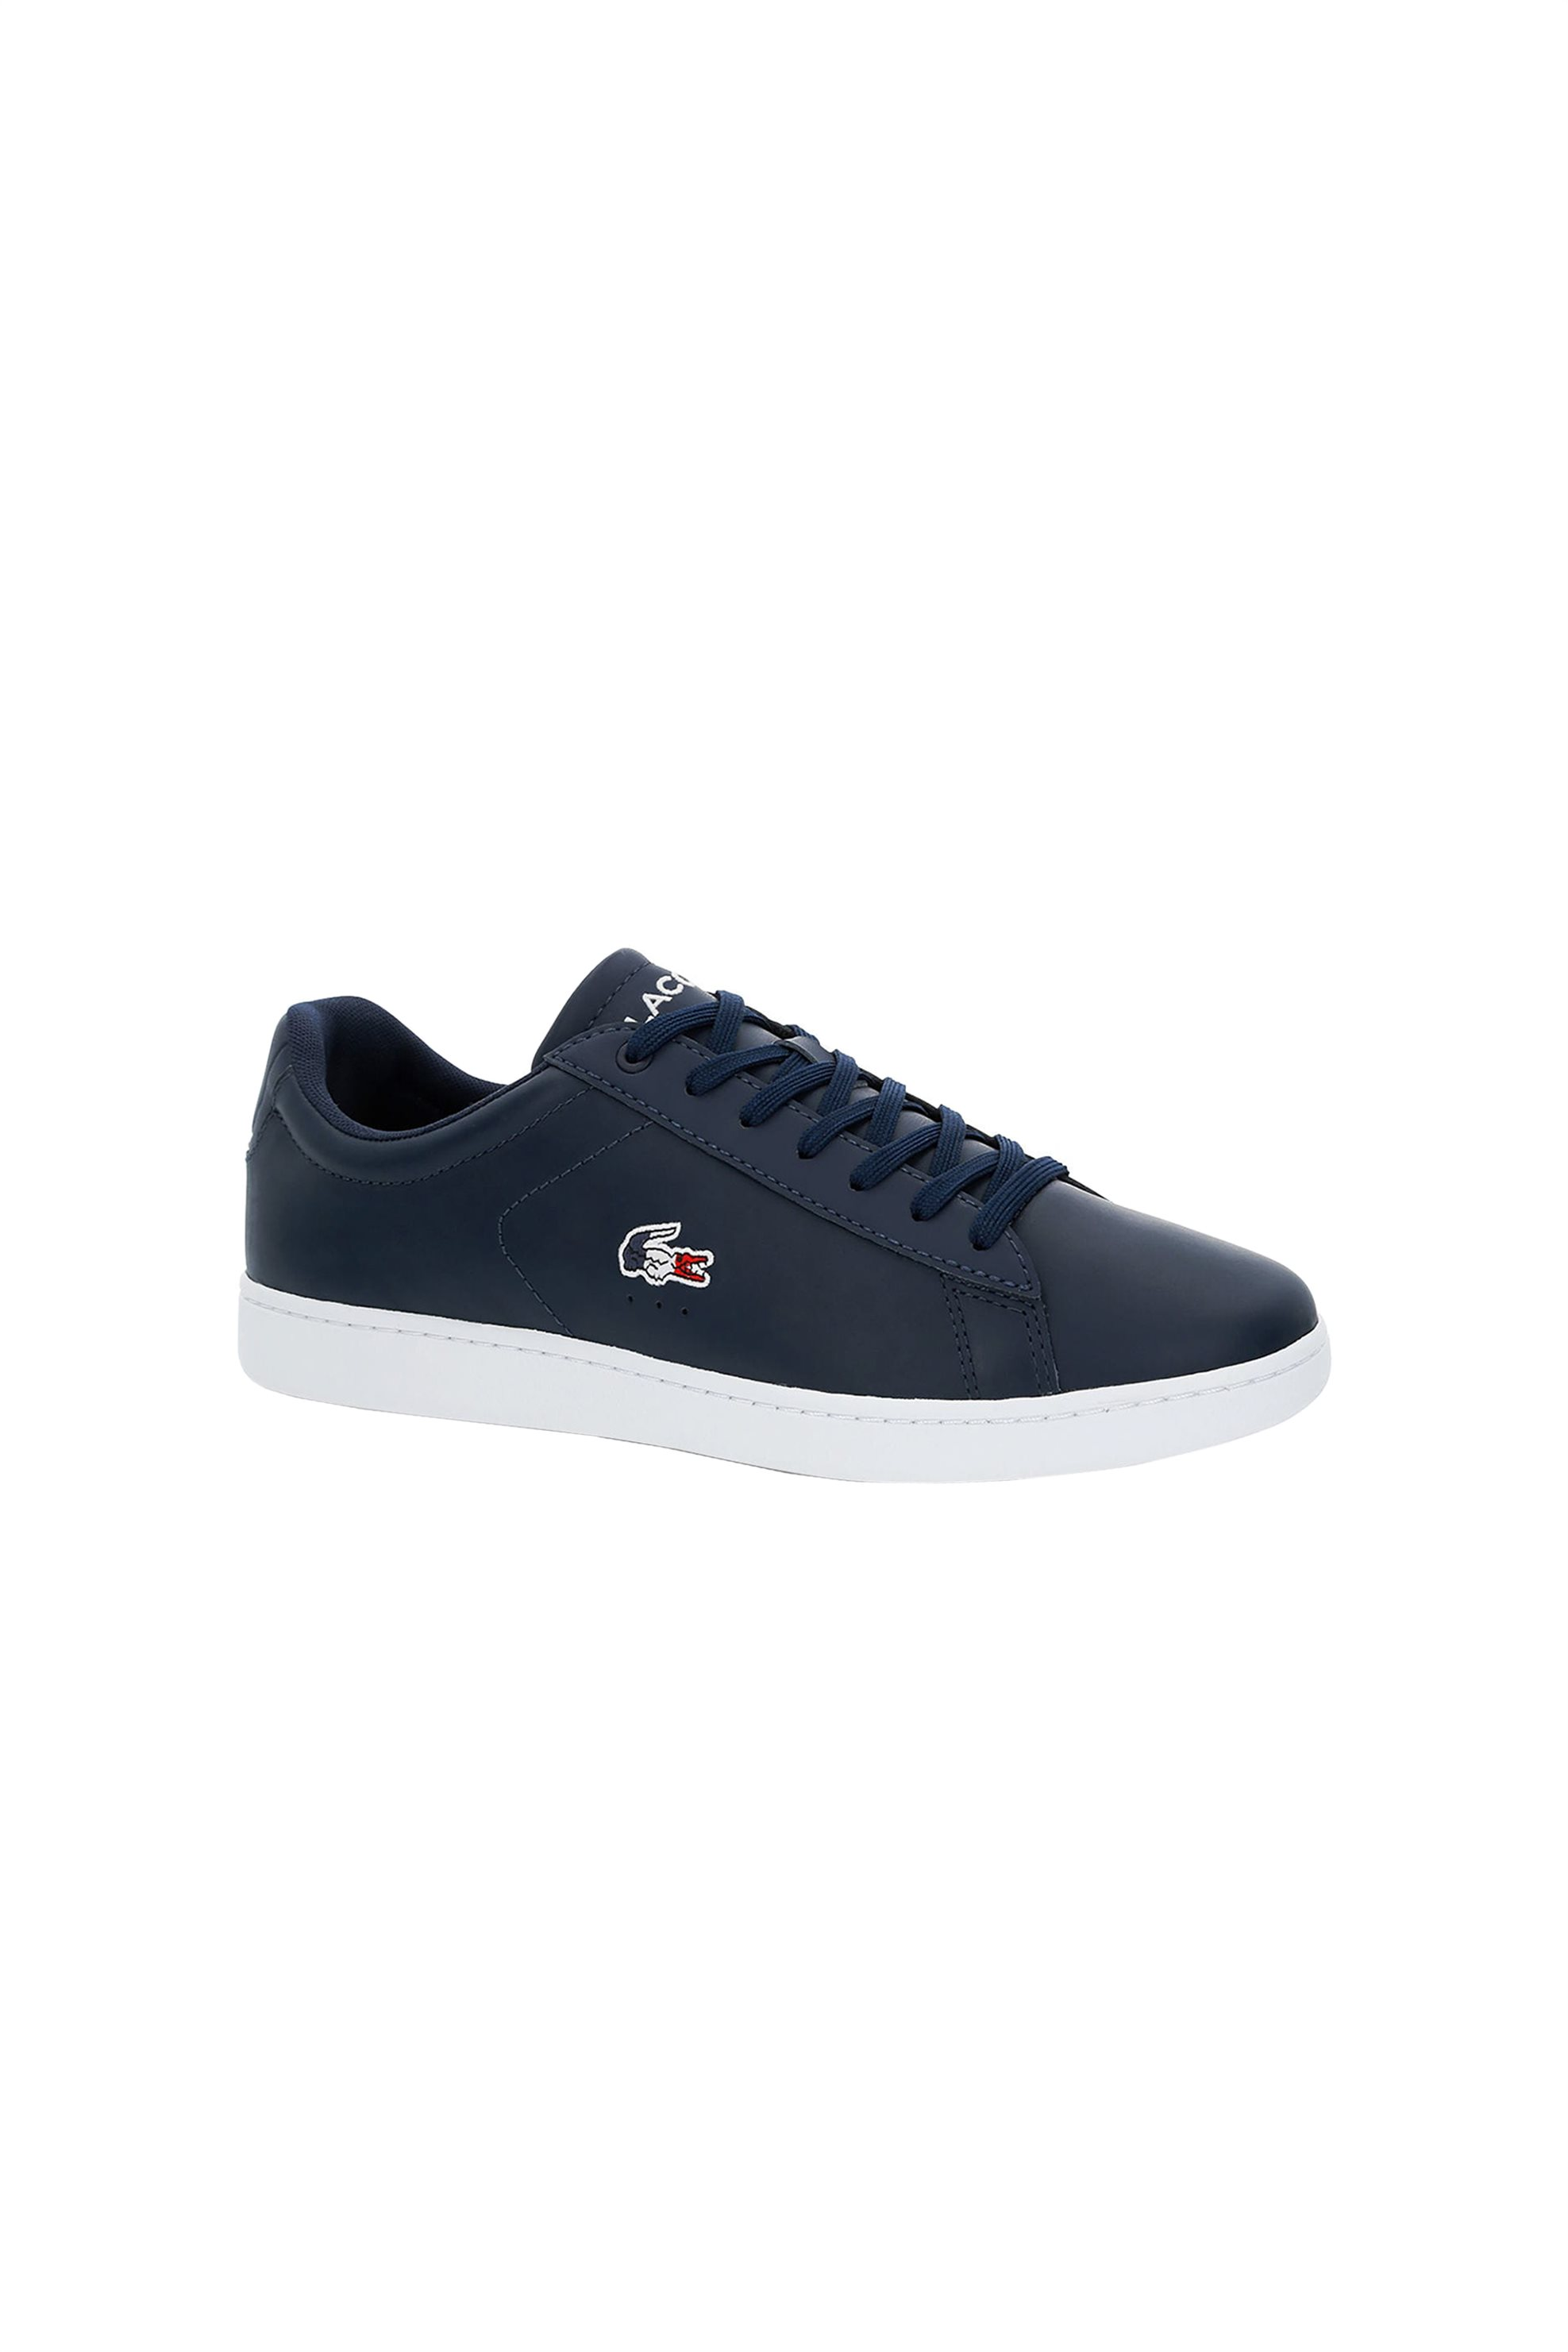 14282f7a3207 Notos Lacoste ανδρικά sneakers με κορδόνια Carnaby Evo – 37SMA00137A2 –  Μπλε Σκούρο